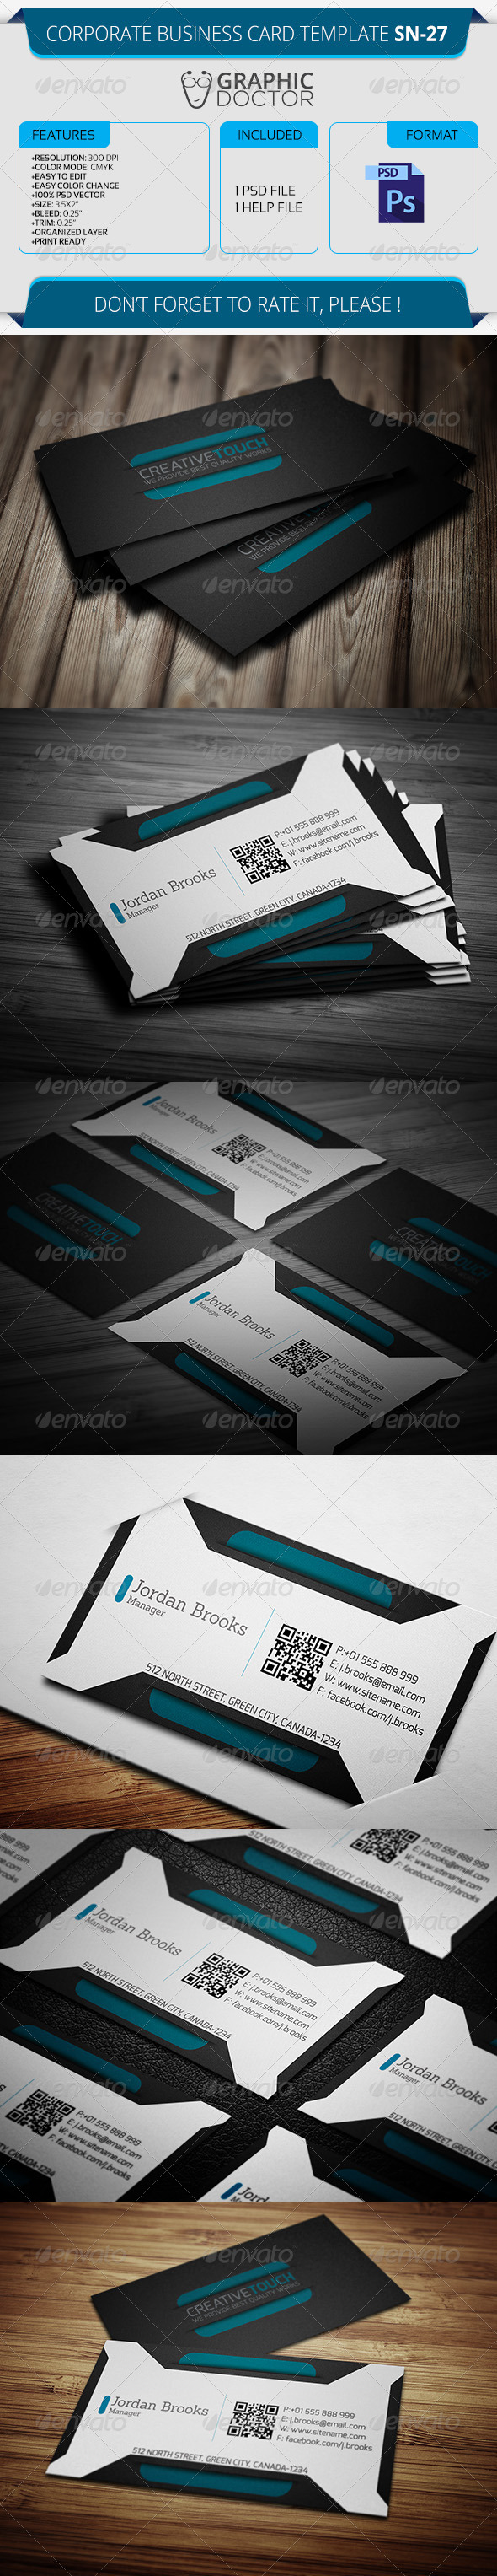 Corporate Business Card Template SN-27 - Corporate Business Cards